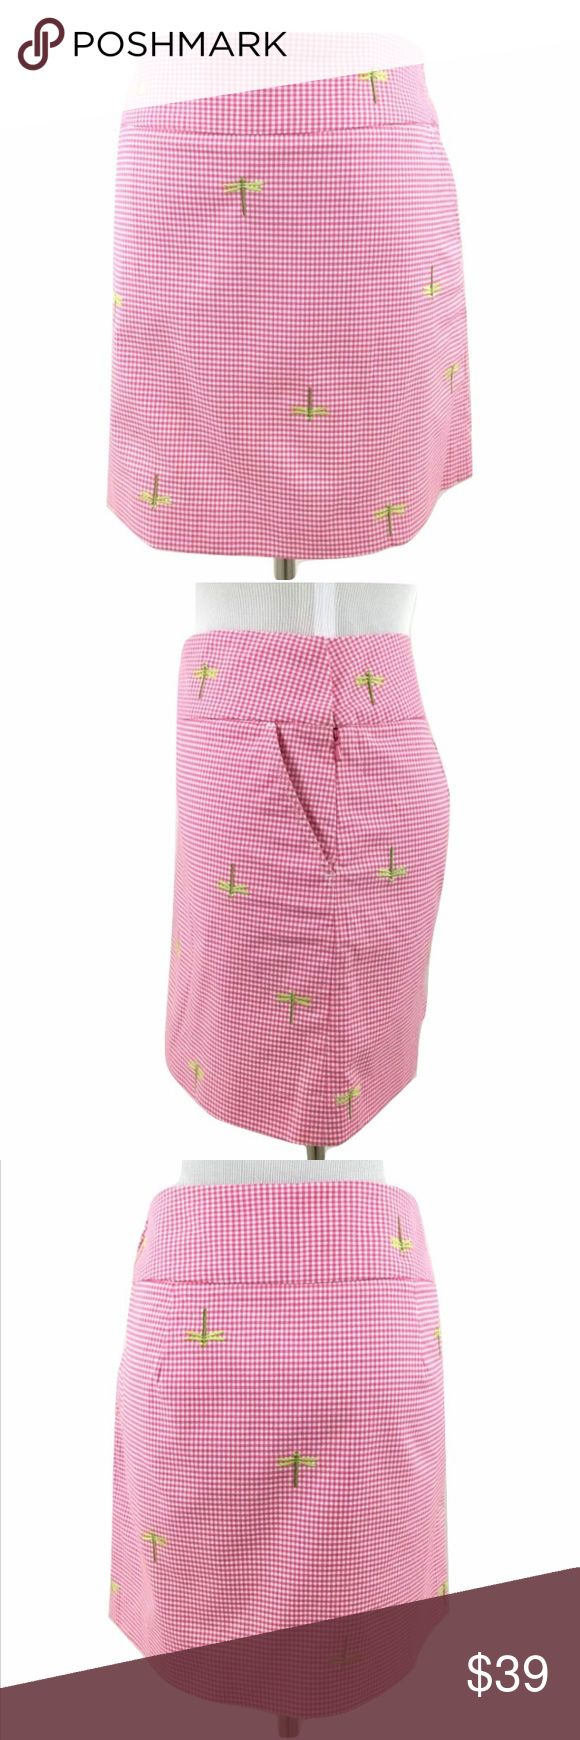 J CREW Pink Gingham Check Embroidered Skirt Size:  4 Color:  Pink Gingham with Green Embroidered Dragonfly Material:  98% Cotton 2% Spandex Lining:  Unlined Closure:  Side Zipper Details:  Side Pockets Care:  Machine Wash All measurements are in inches and taken with garment lying flat:  Waist:  15 Hips:  19 Overall Length:  16 Item:  633_531 J. Crew Skirts